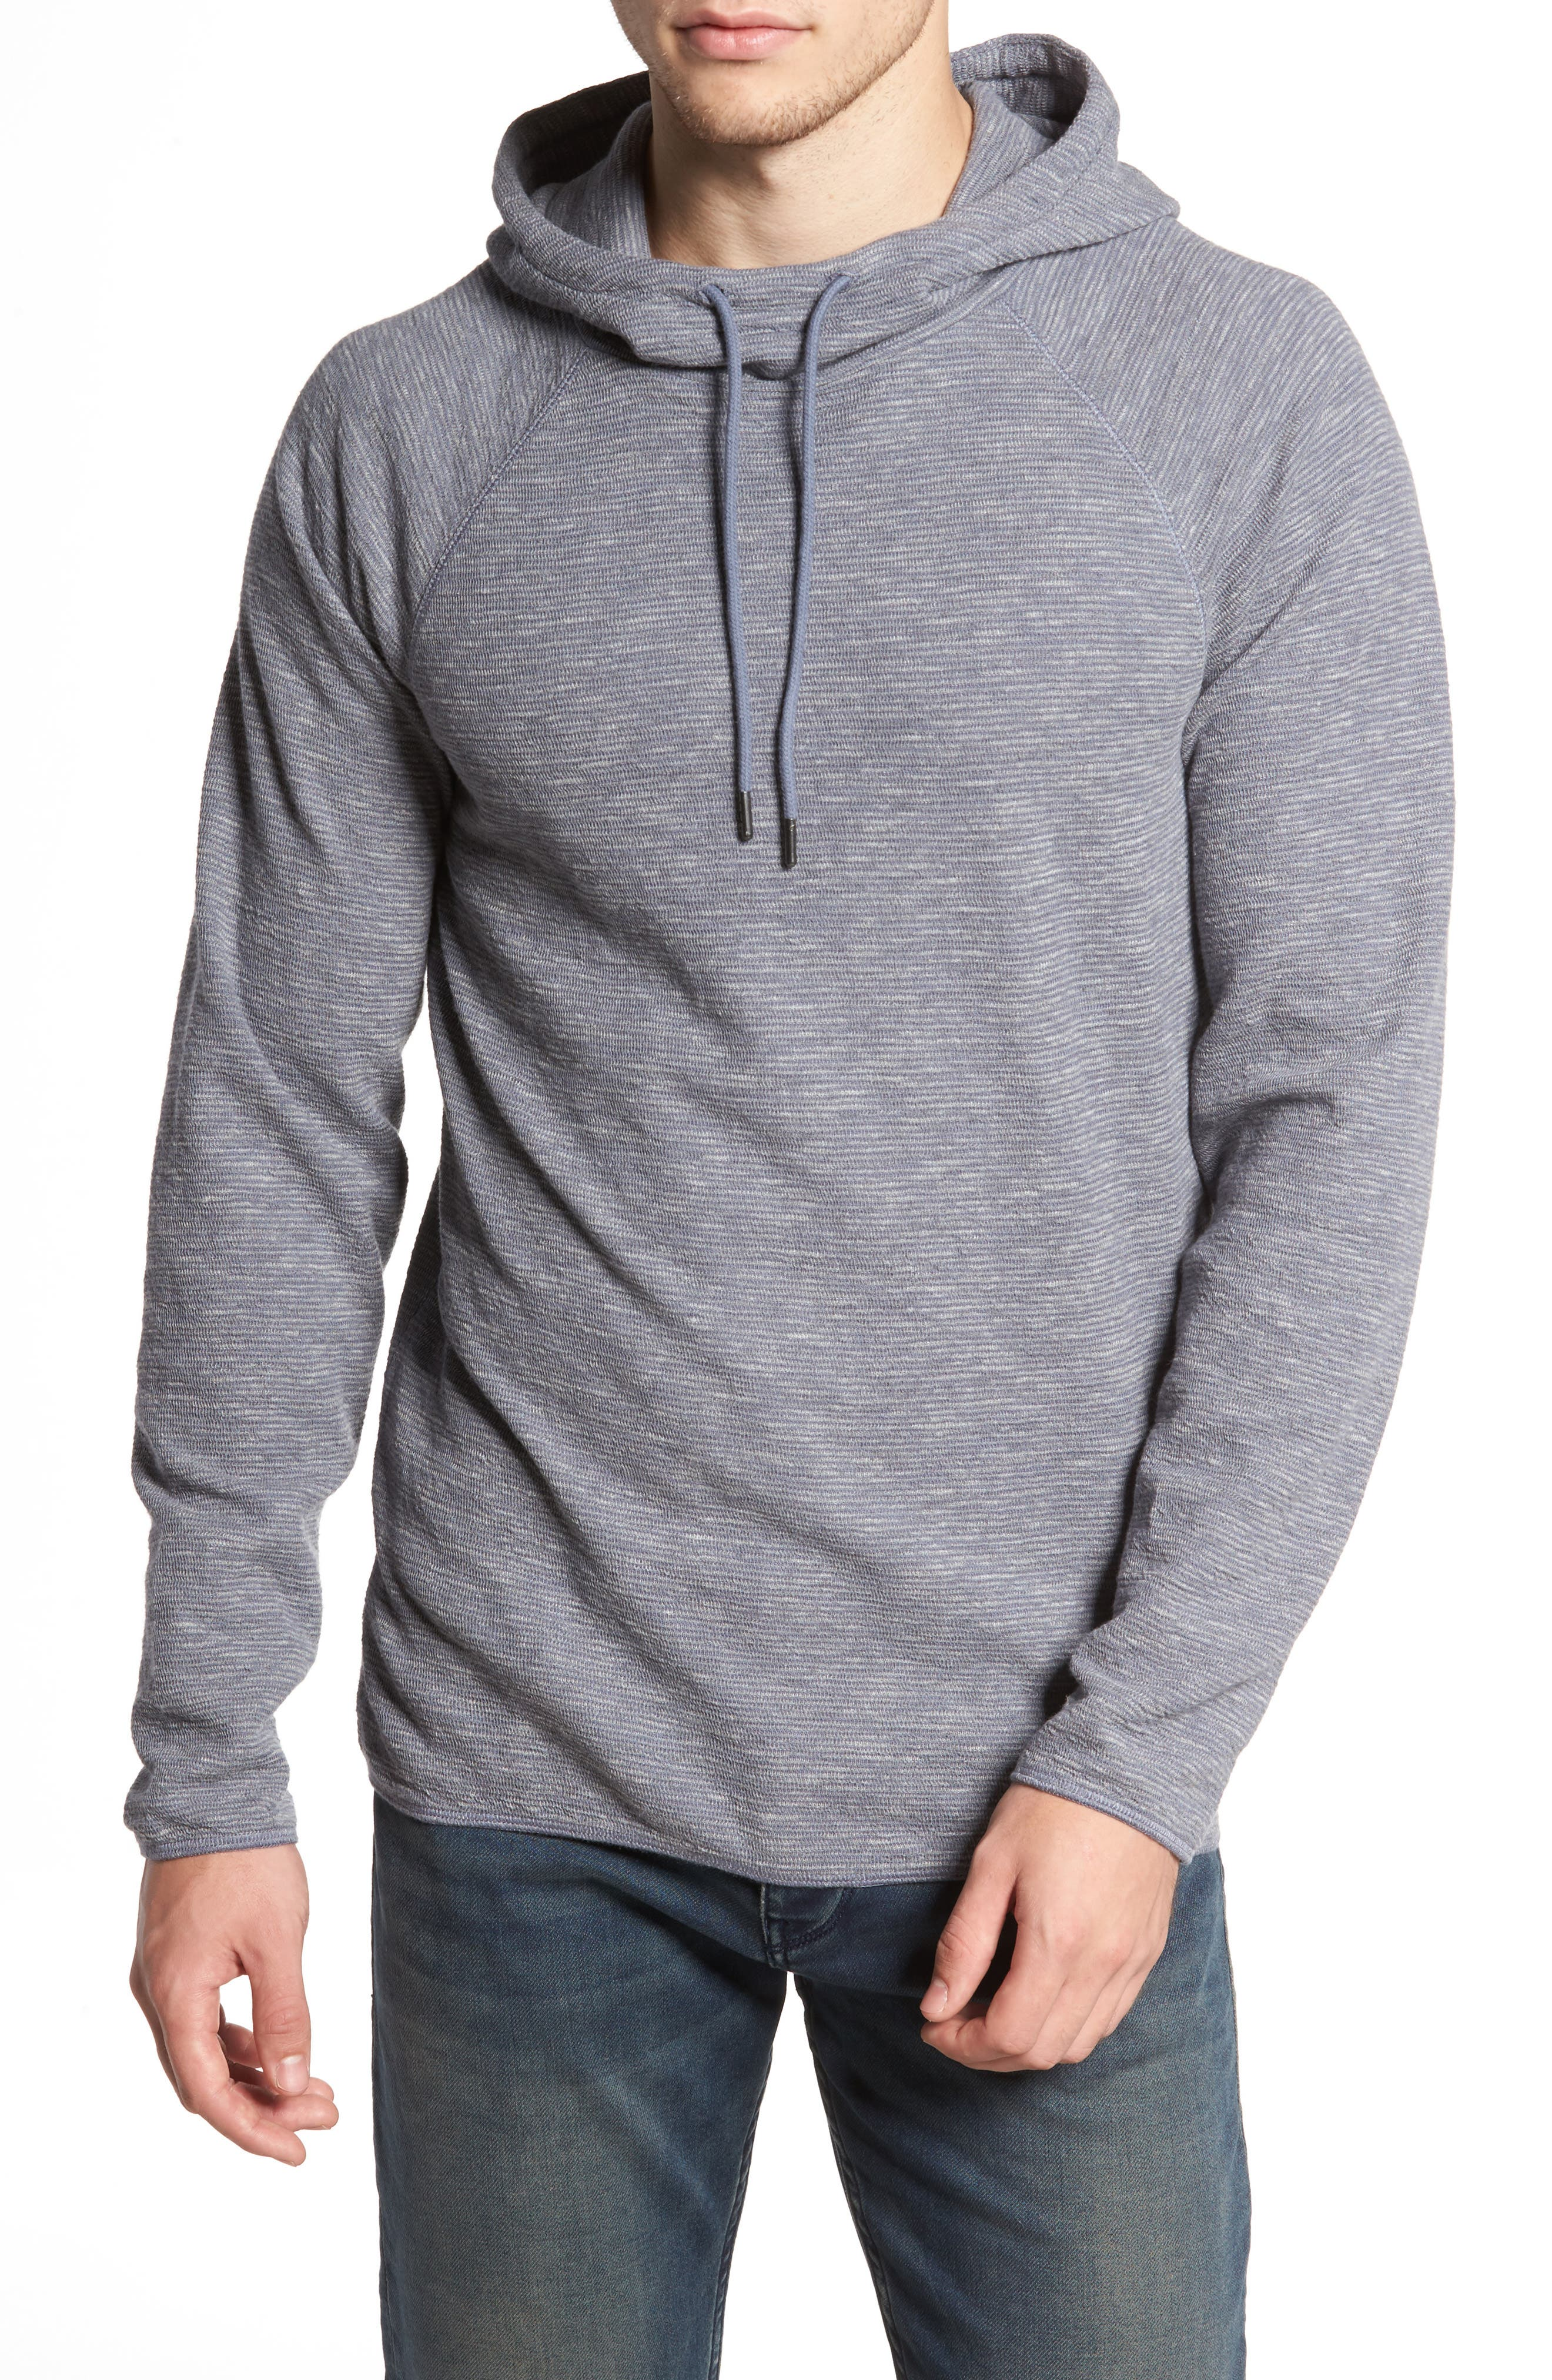 Wut Hoodie,                         Main,                         color, 415